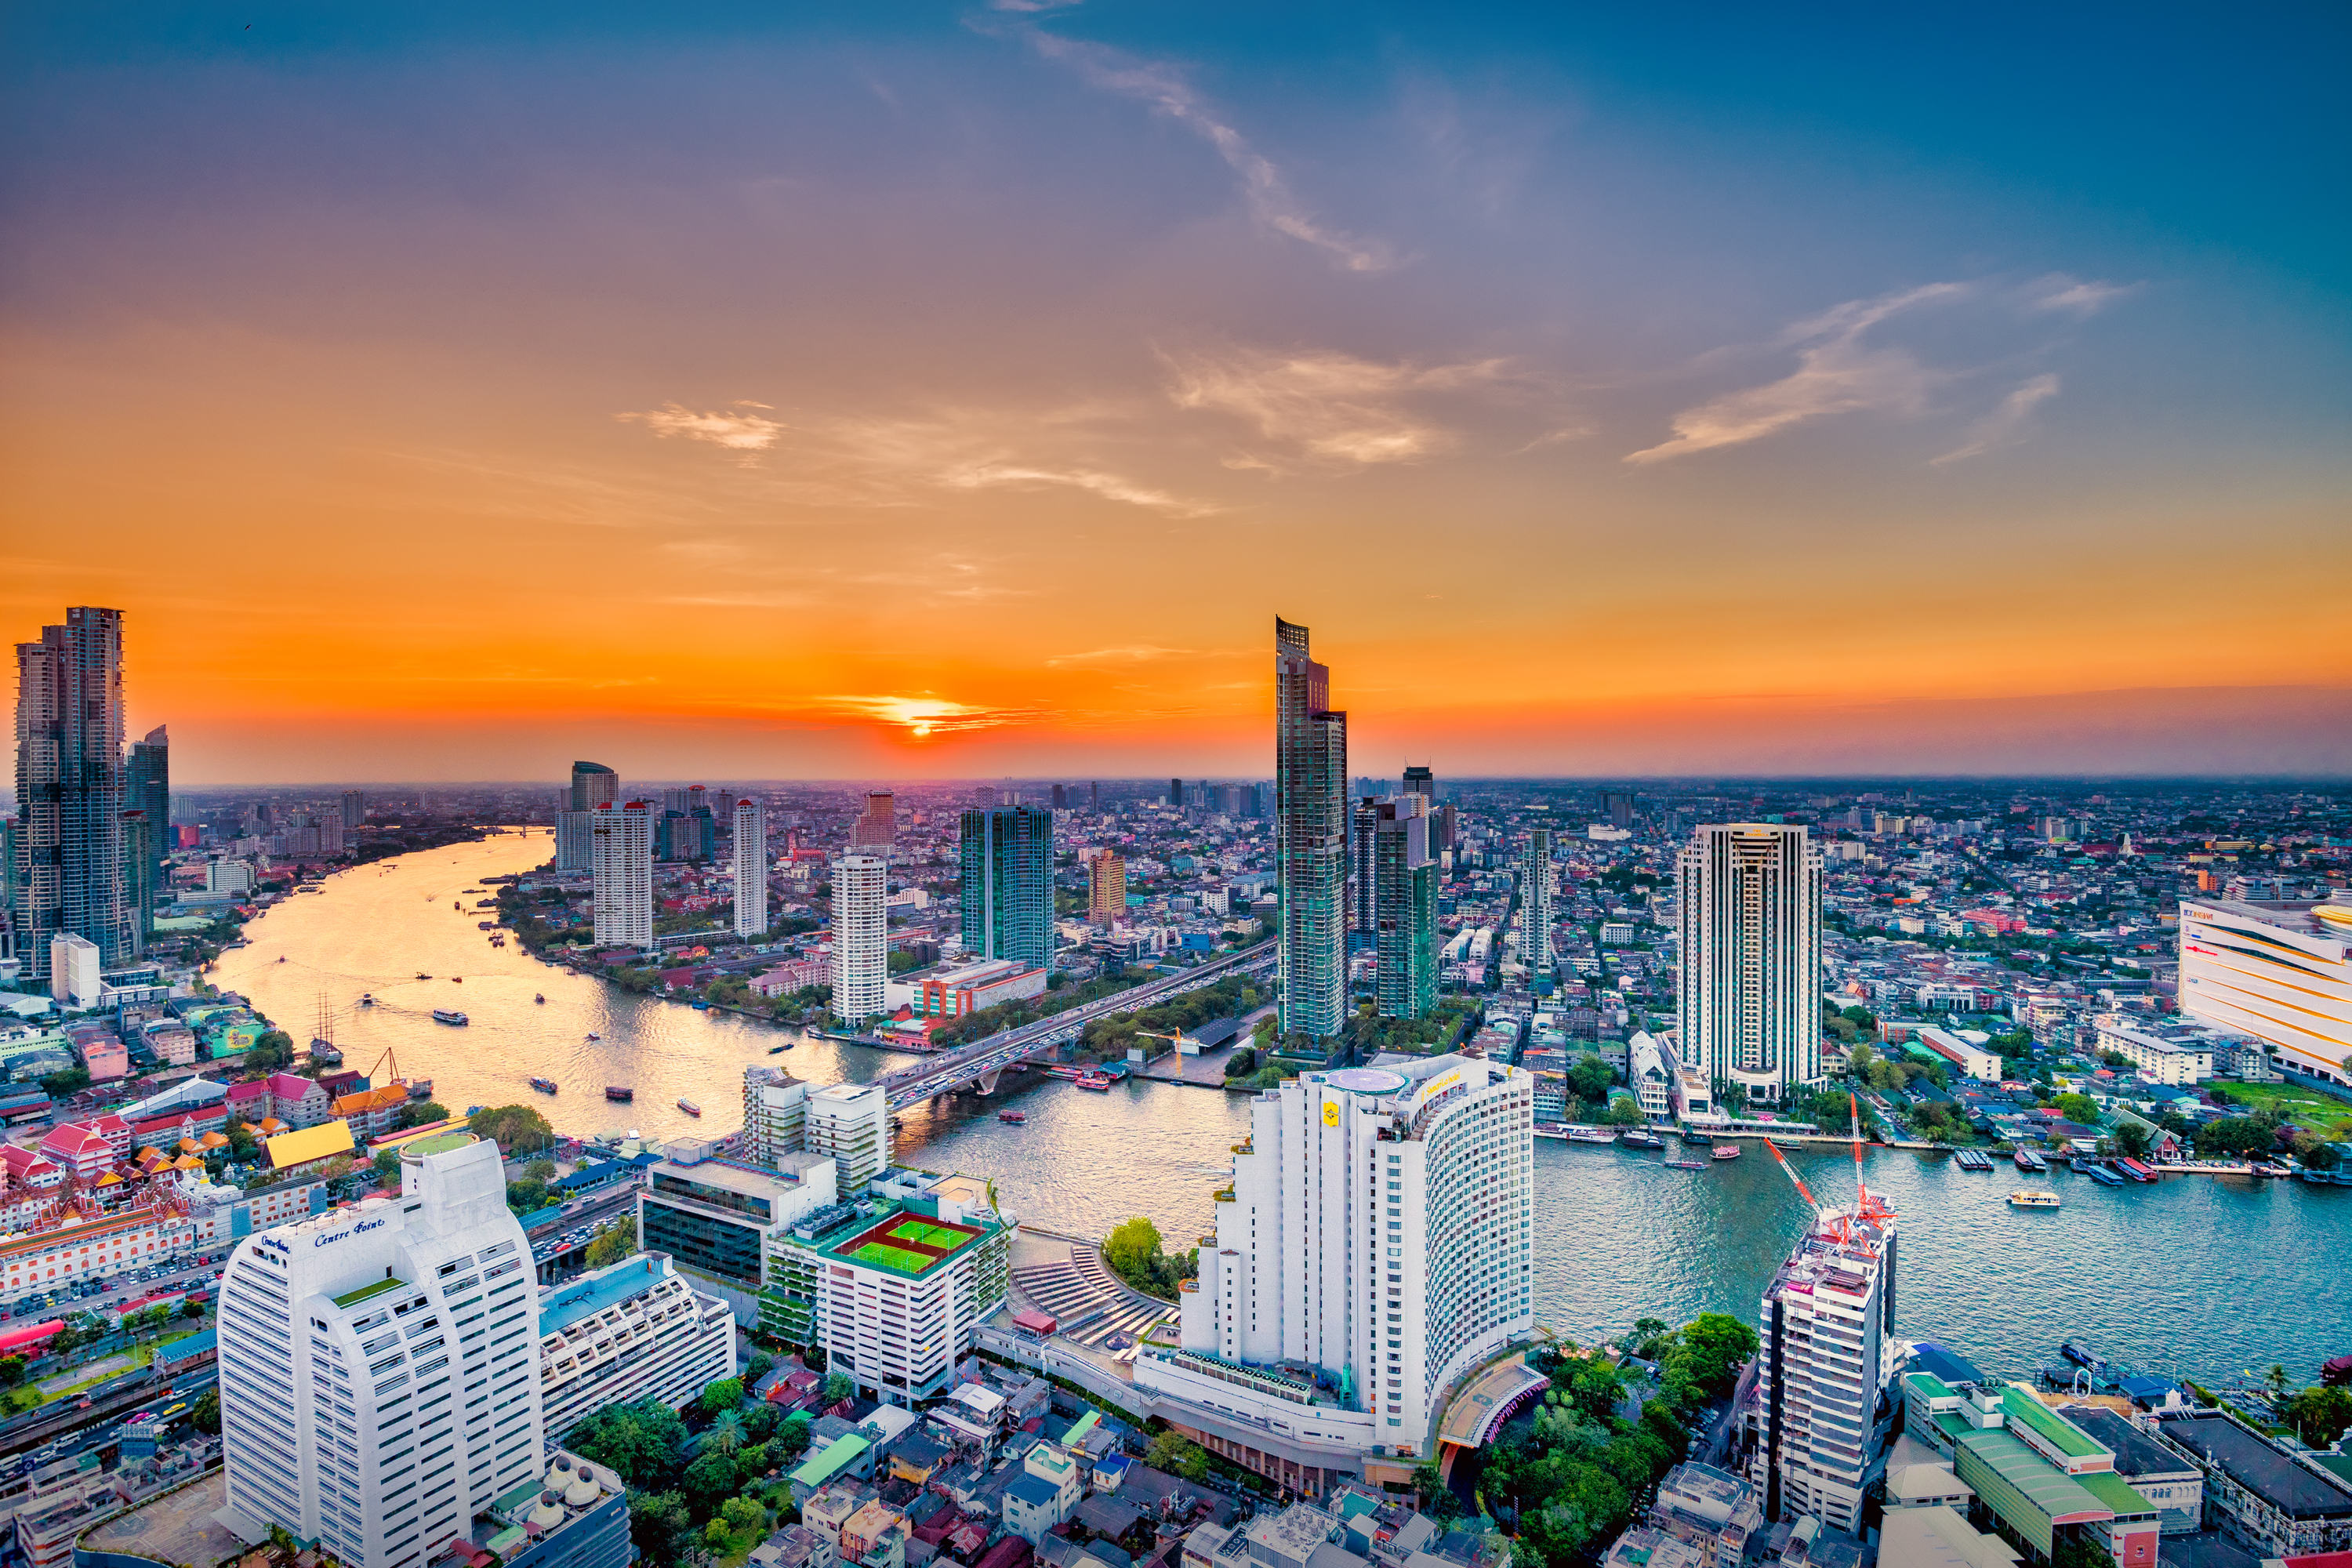 Bangkok Aerial Photograph and Chao Phraya River, Bangkok